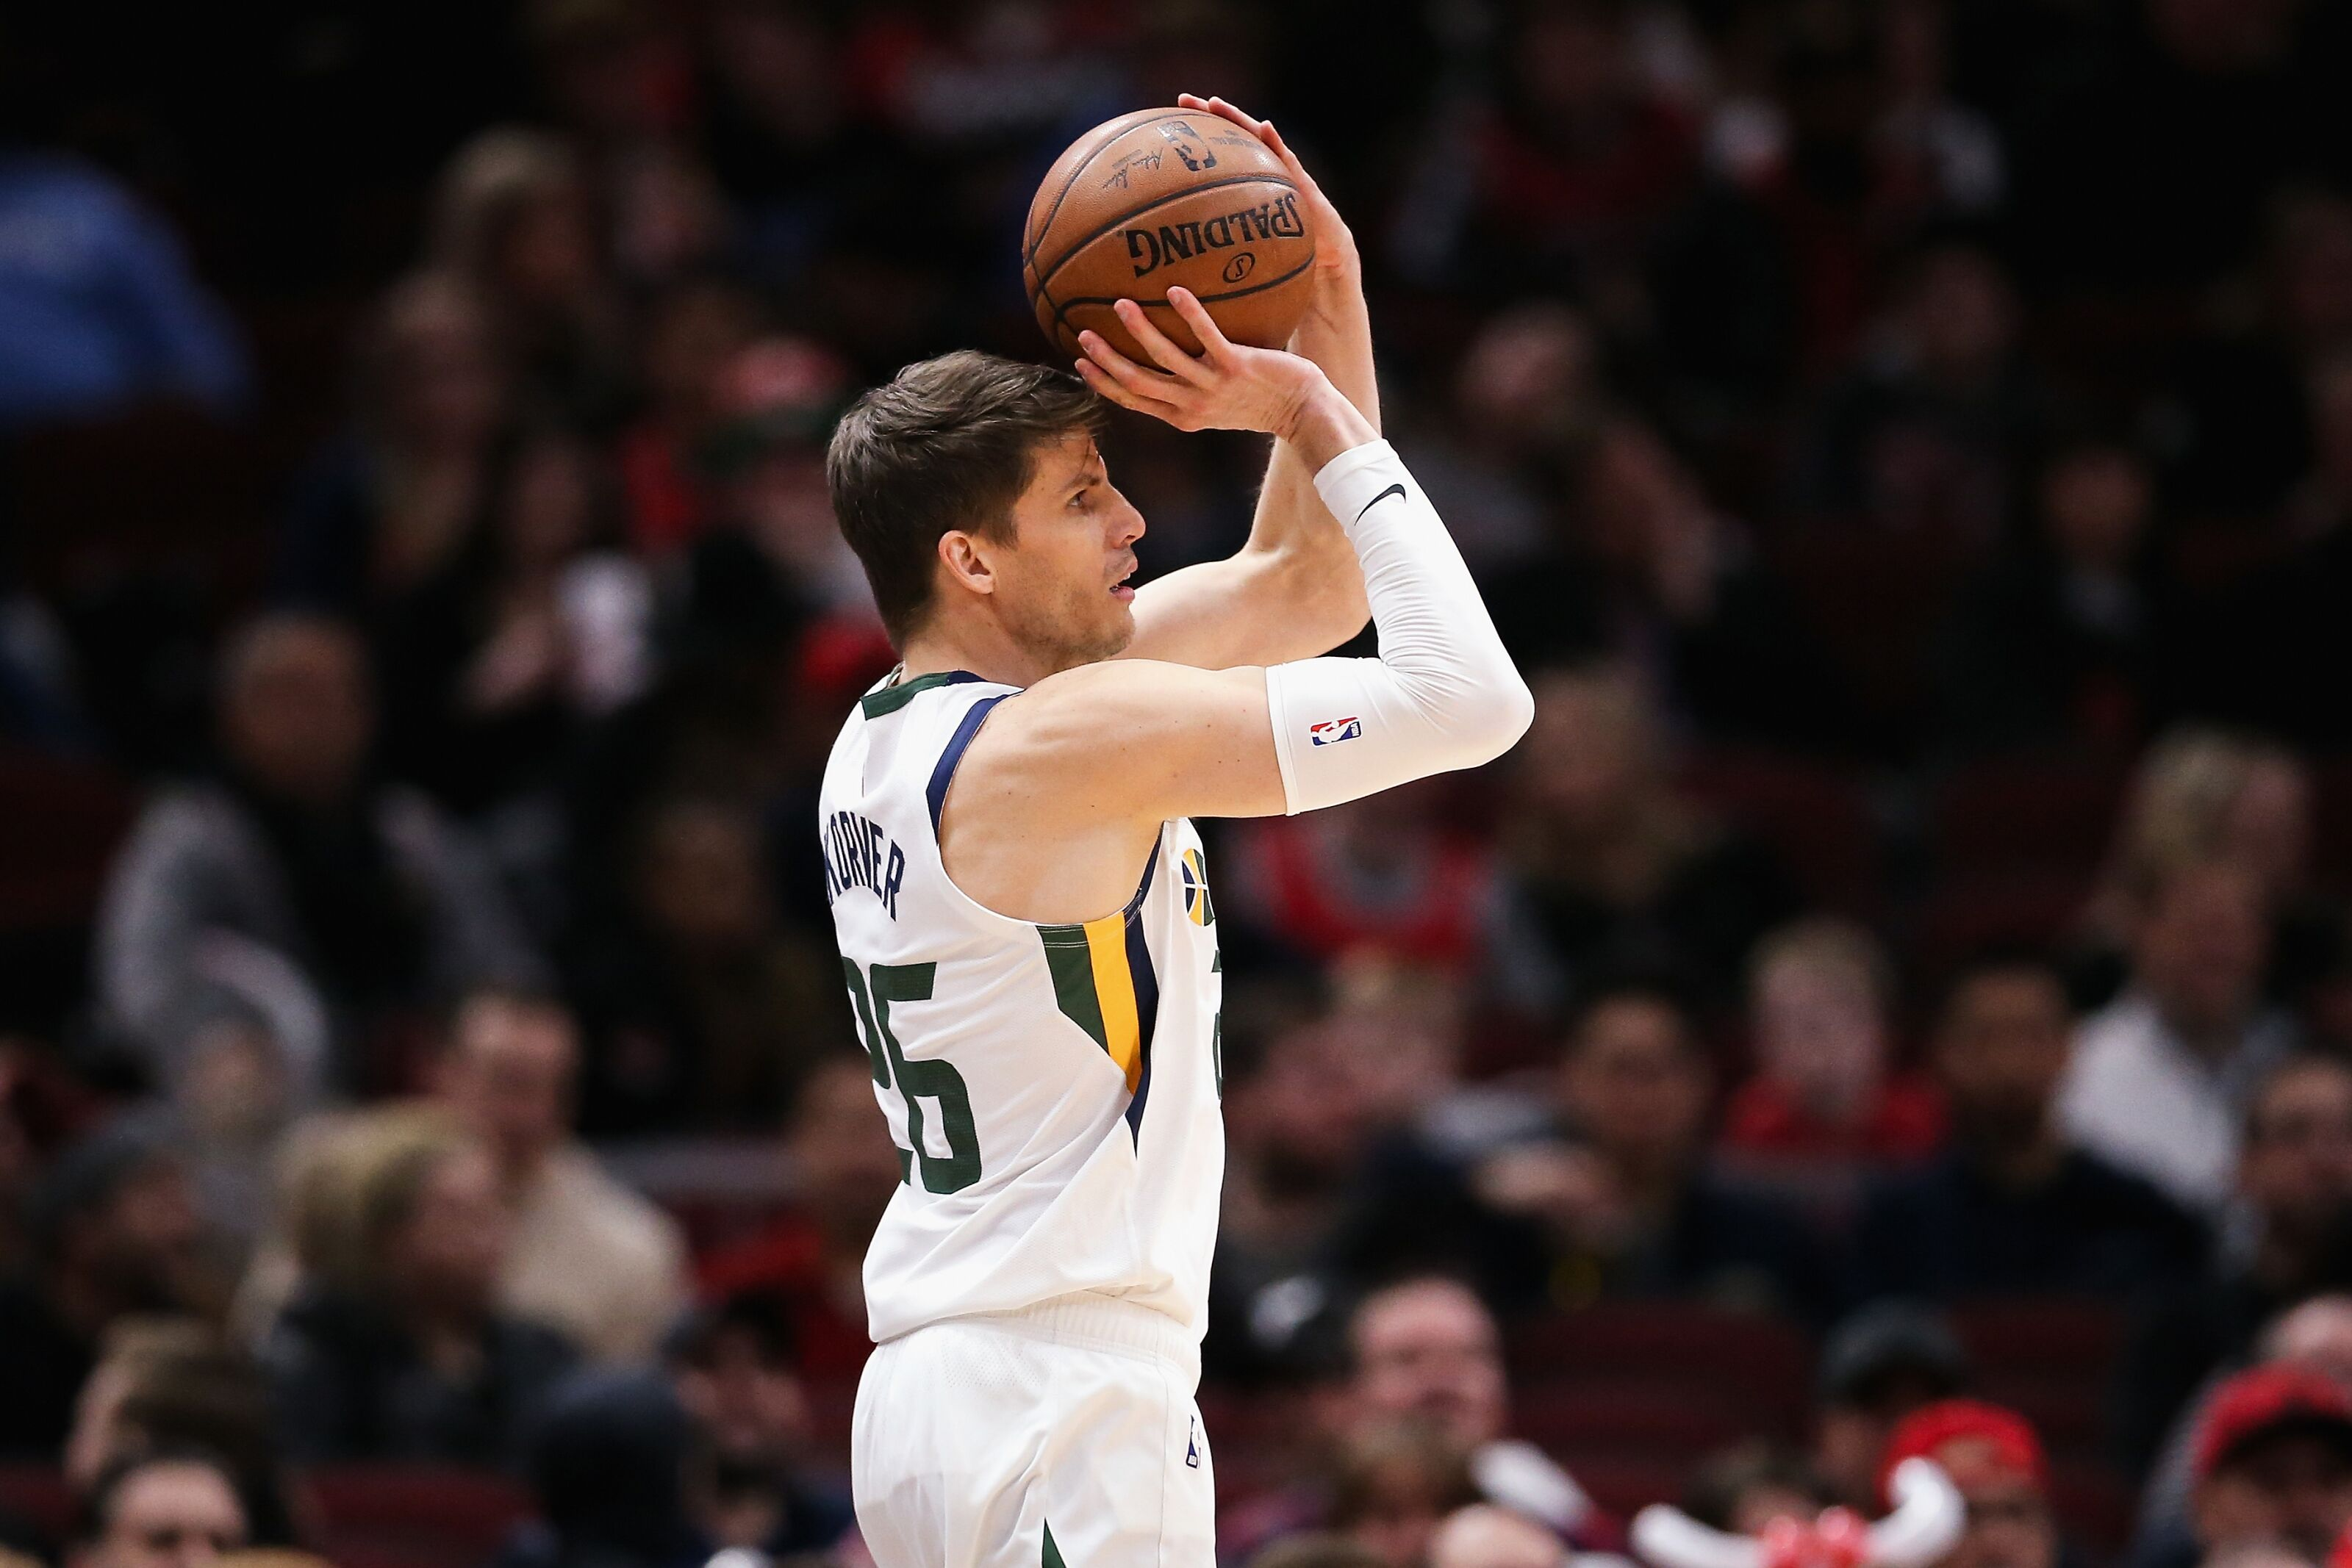 Former Cavs' sniper Kyle Korver reportedly signs with Bucks, and is quality addition